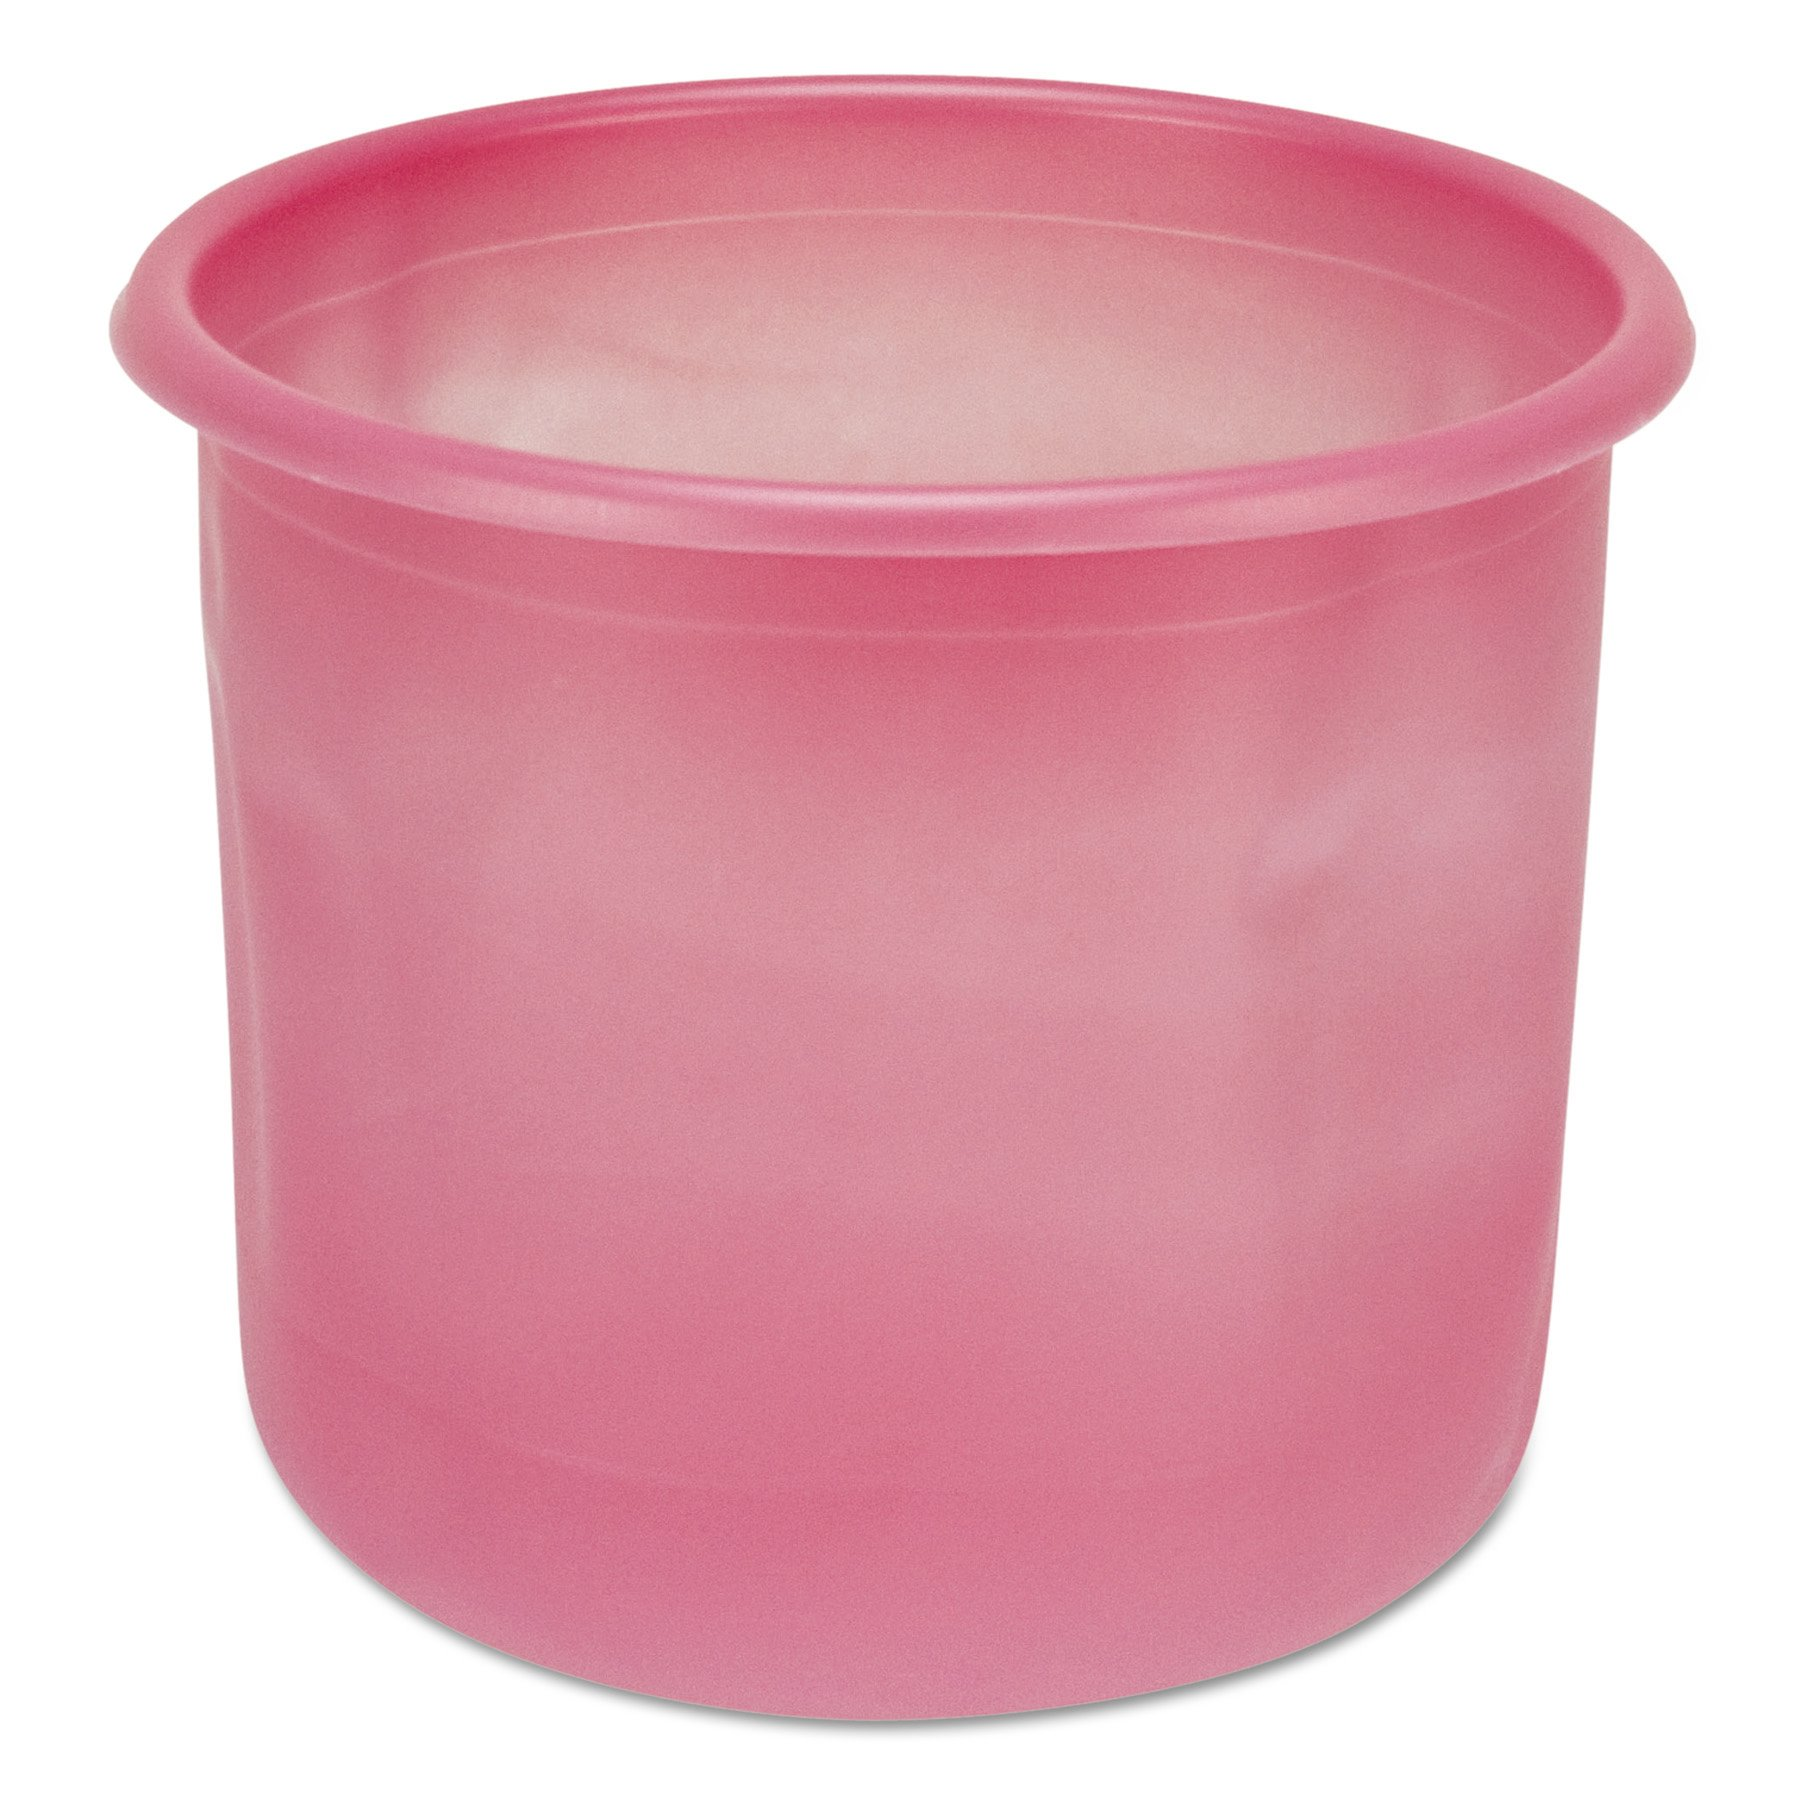 Binks PT-78-K60 2.8 Gal Tank Liners, 2.8 gallon, Pink (Pack of 60)